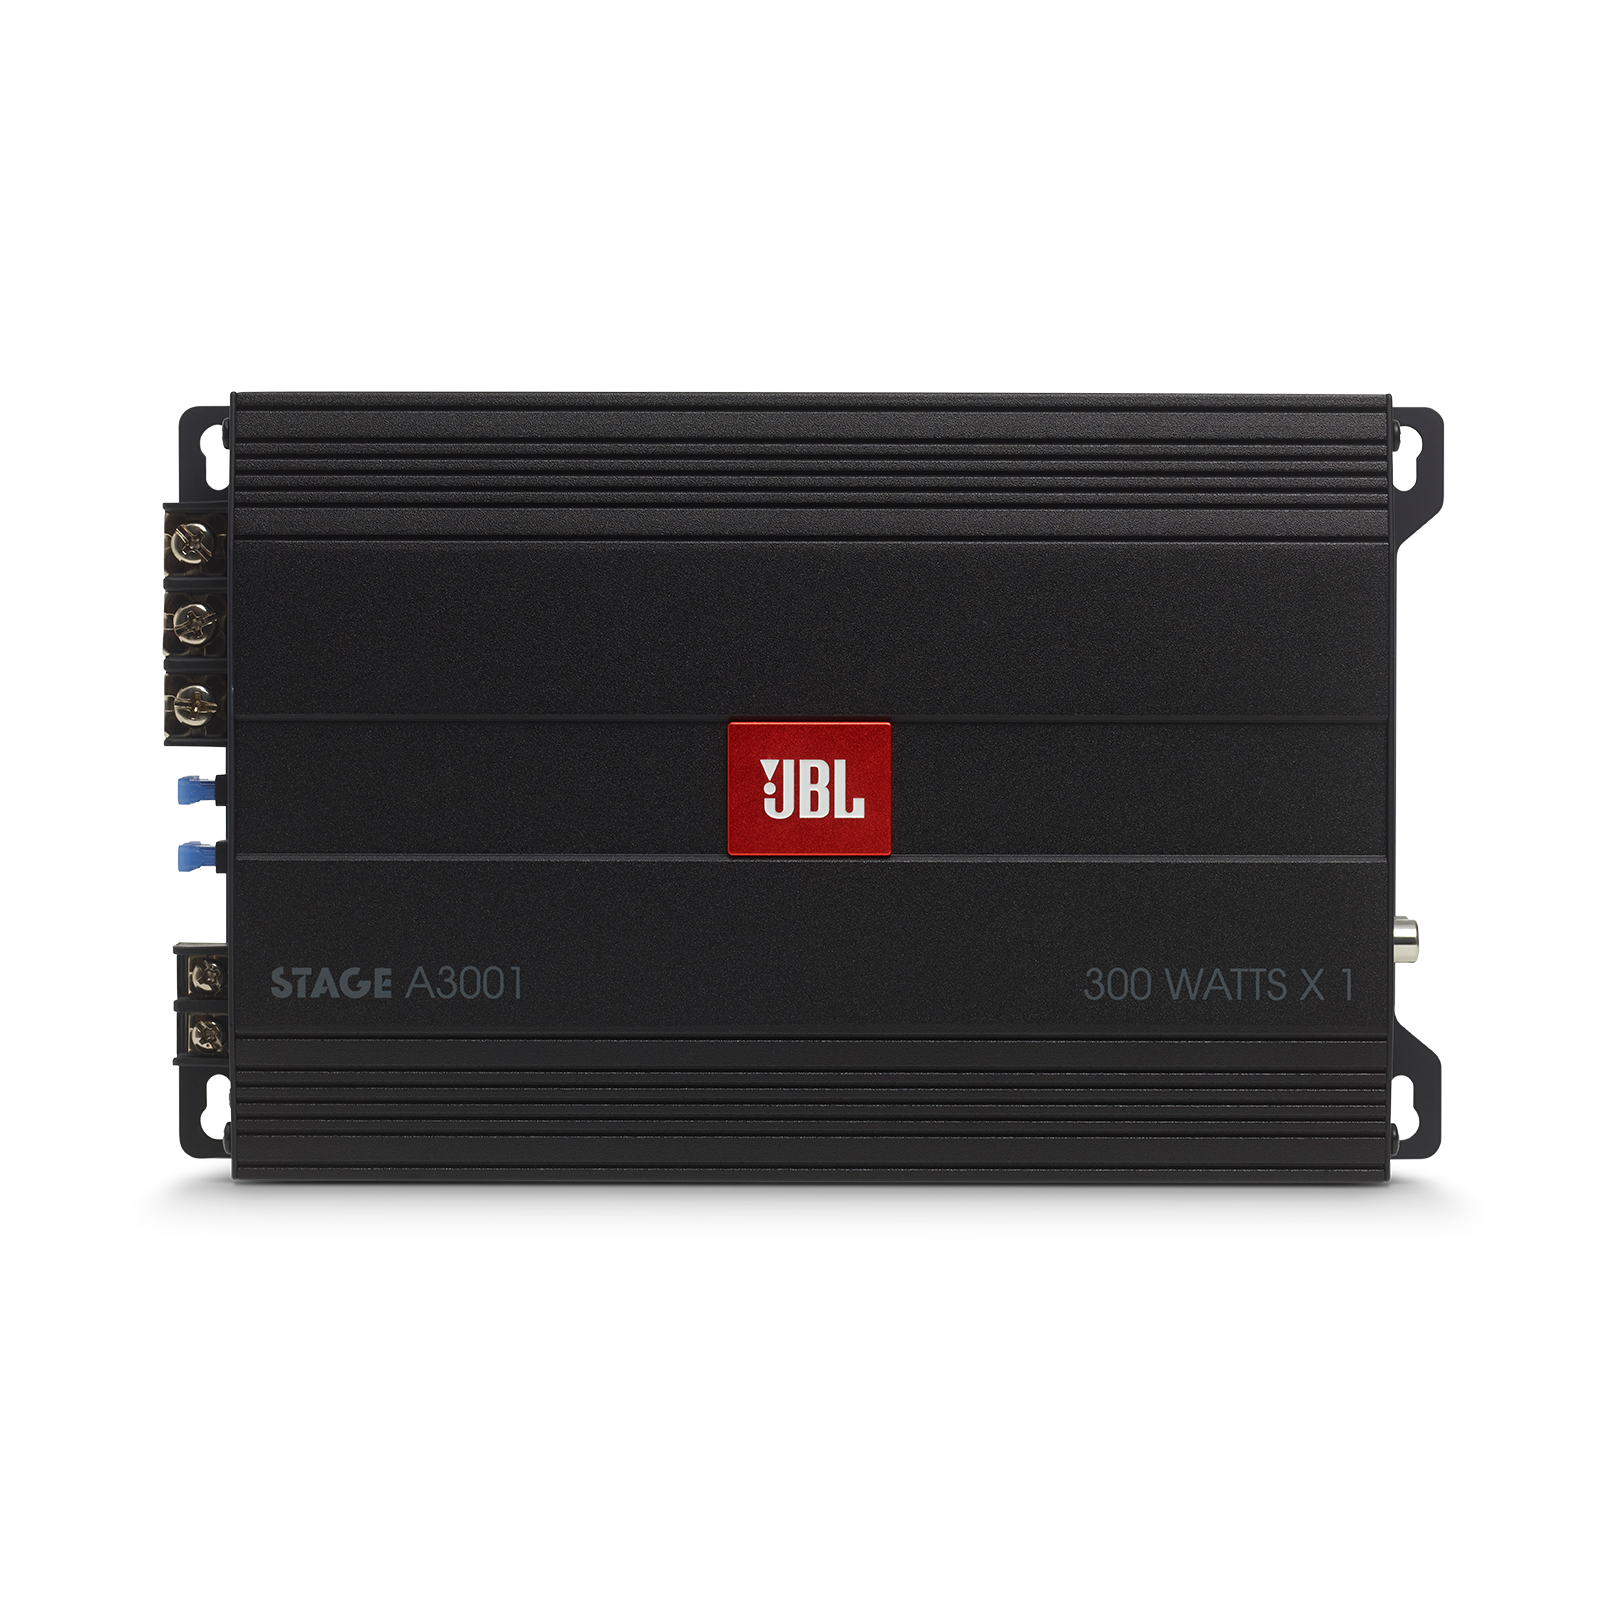 JBL Stage Amplifier A3001